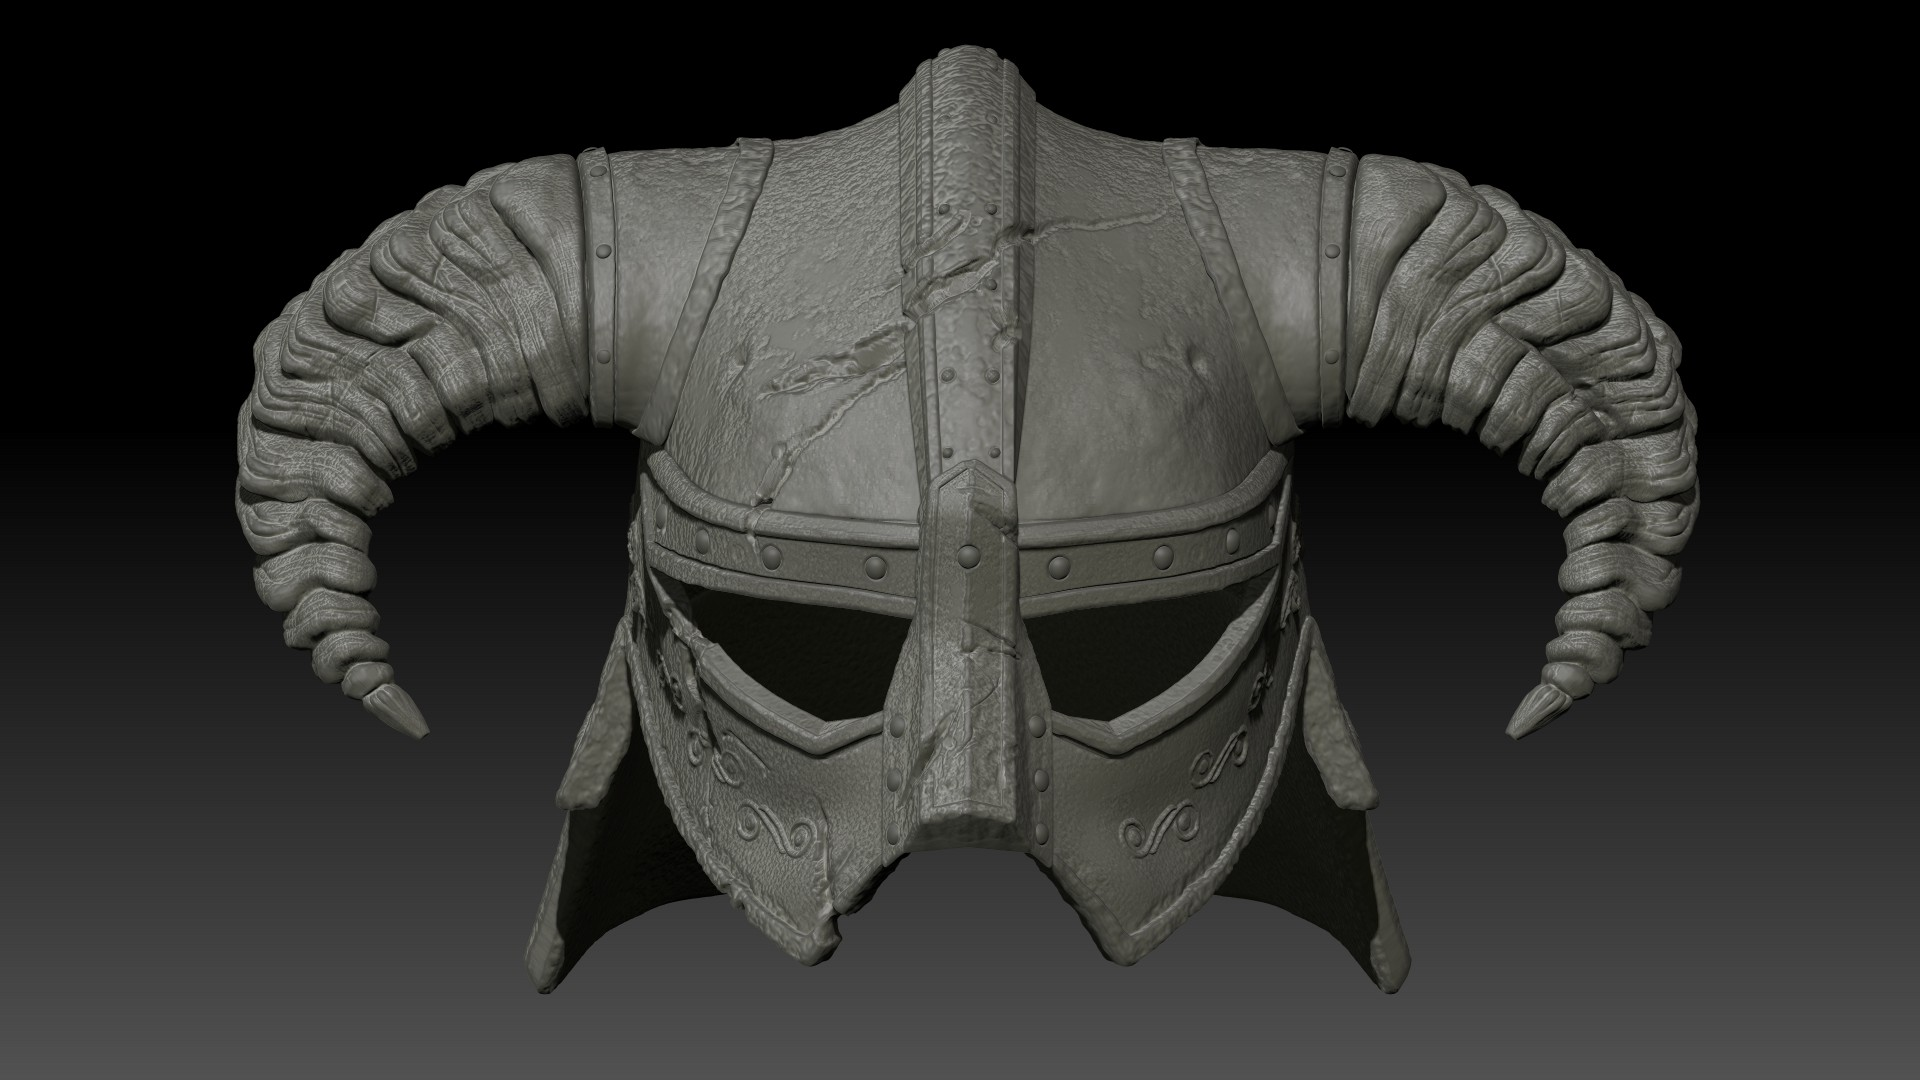 Highpoly model in Zbrush